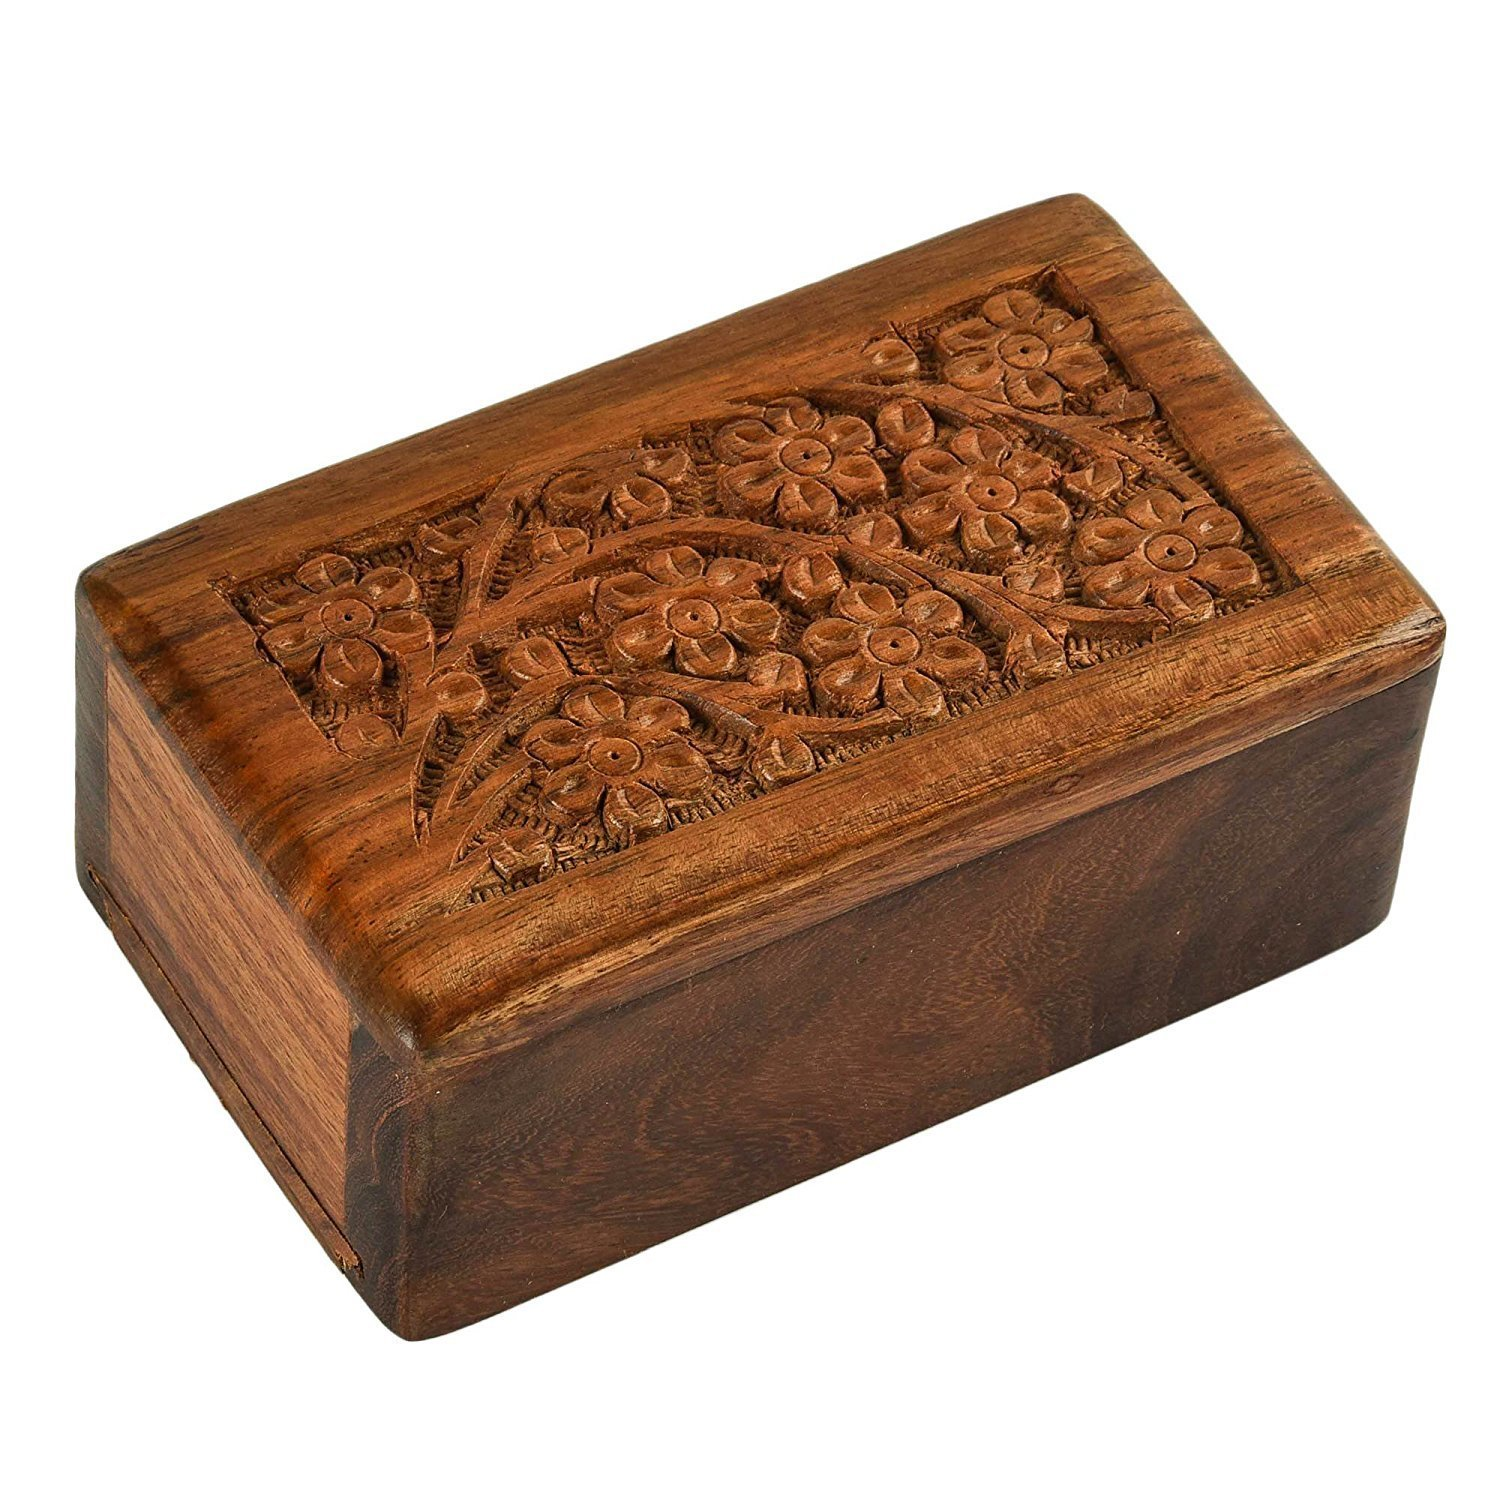 BATRA ASSOCIATES Beautifully Handmade & Handcrafted Tree Of Life Engraving Wooden Urns For Human Ashes Adult By S.B Arts Wooden Box (5 X 3 X 2)